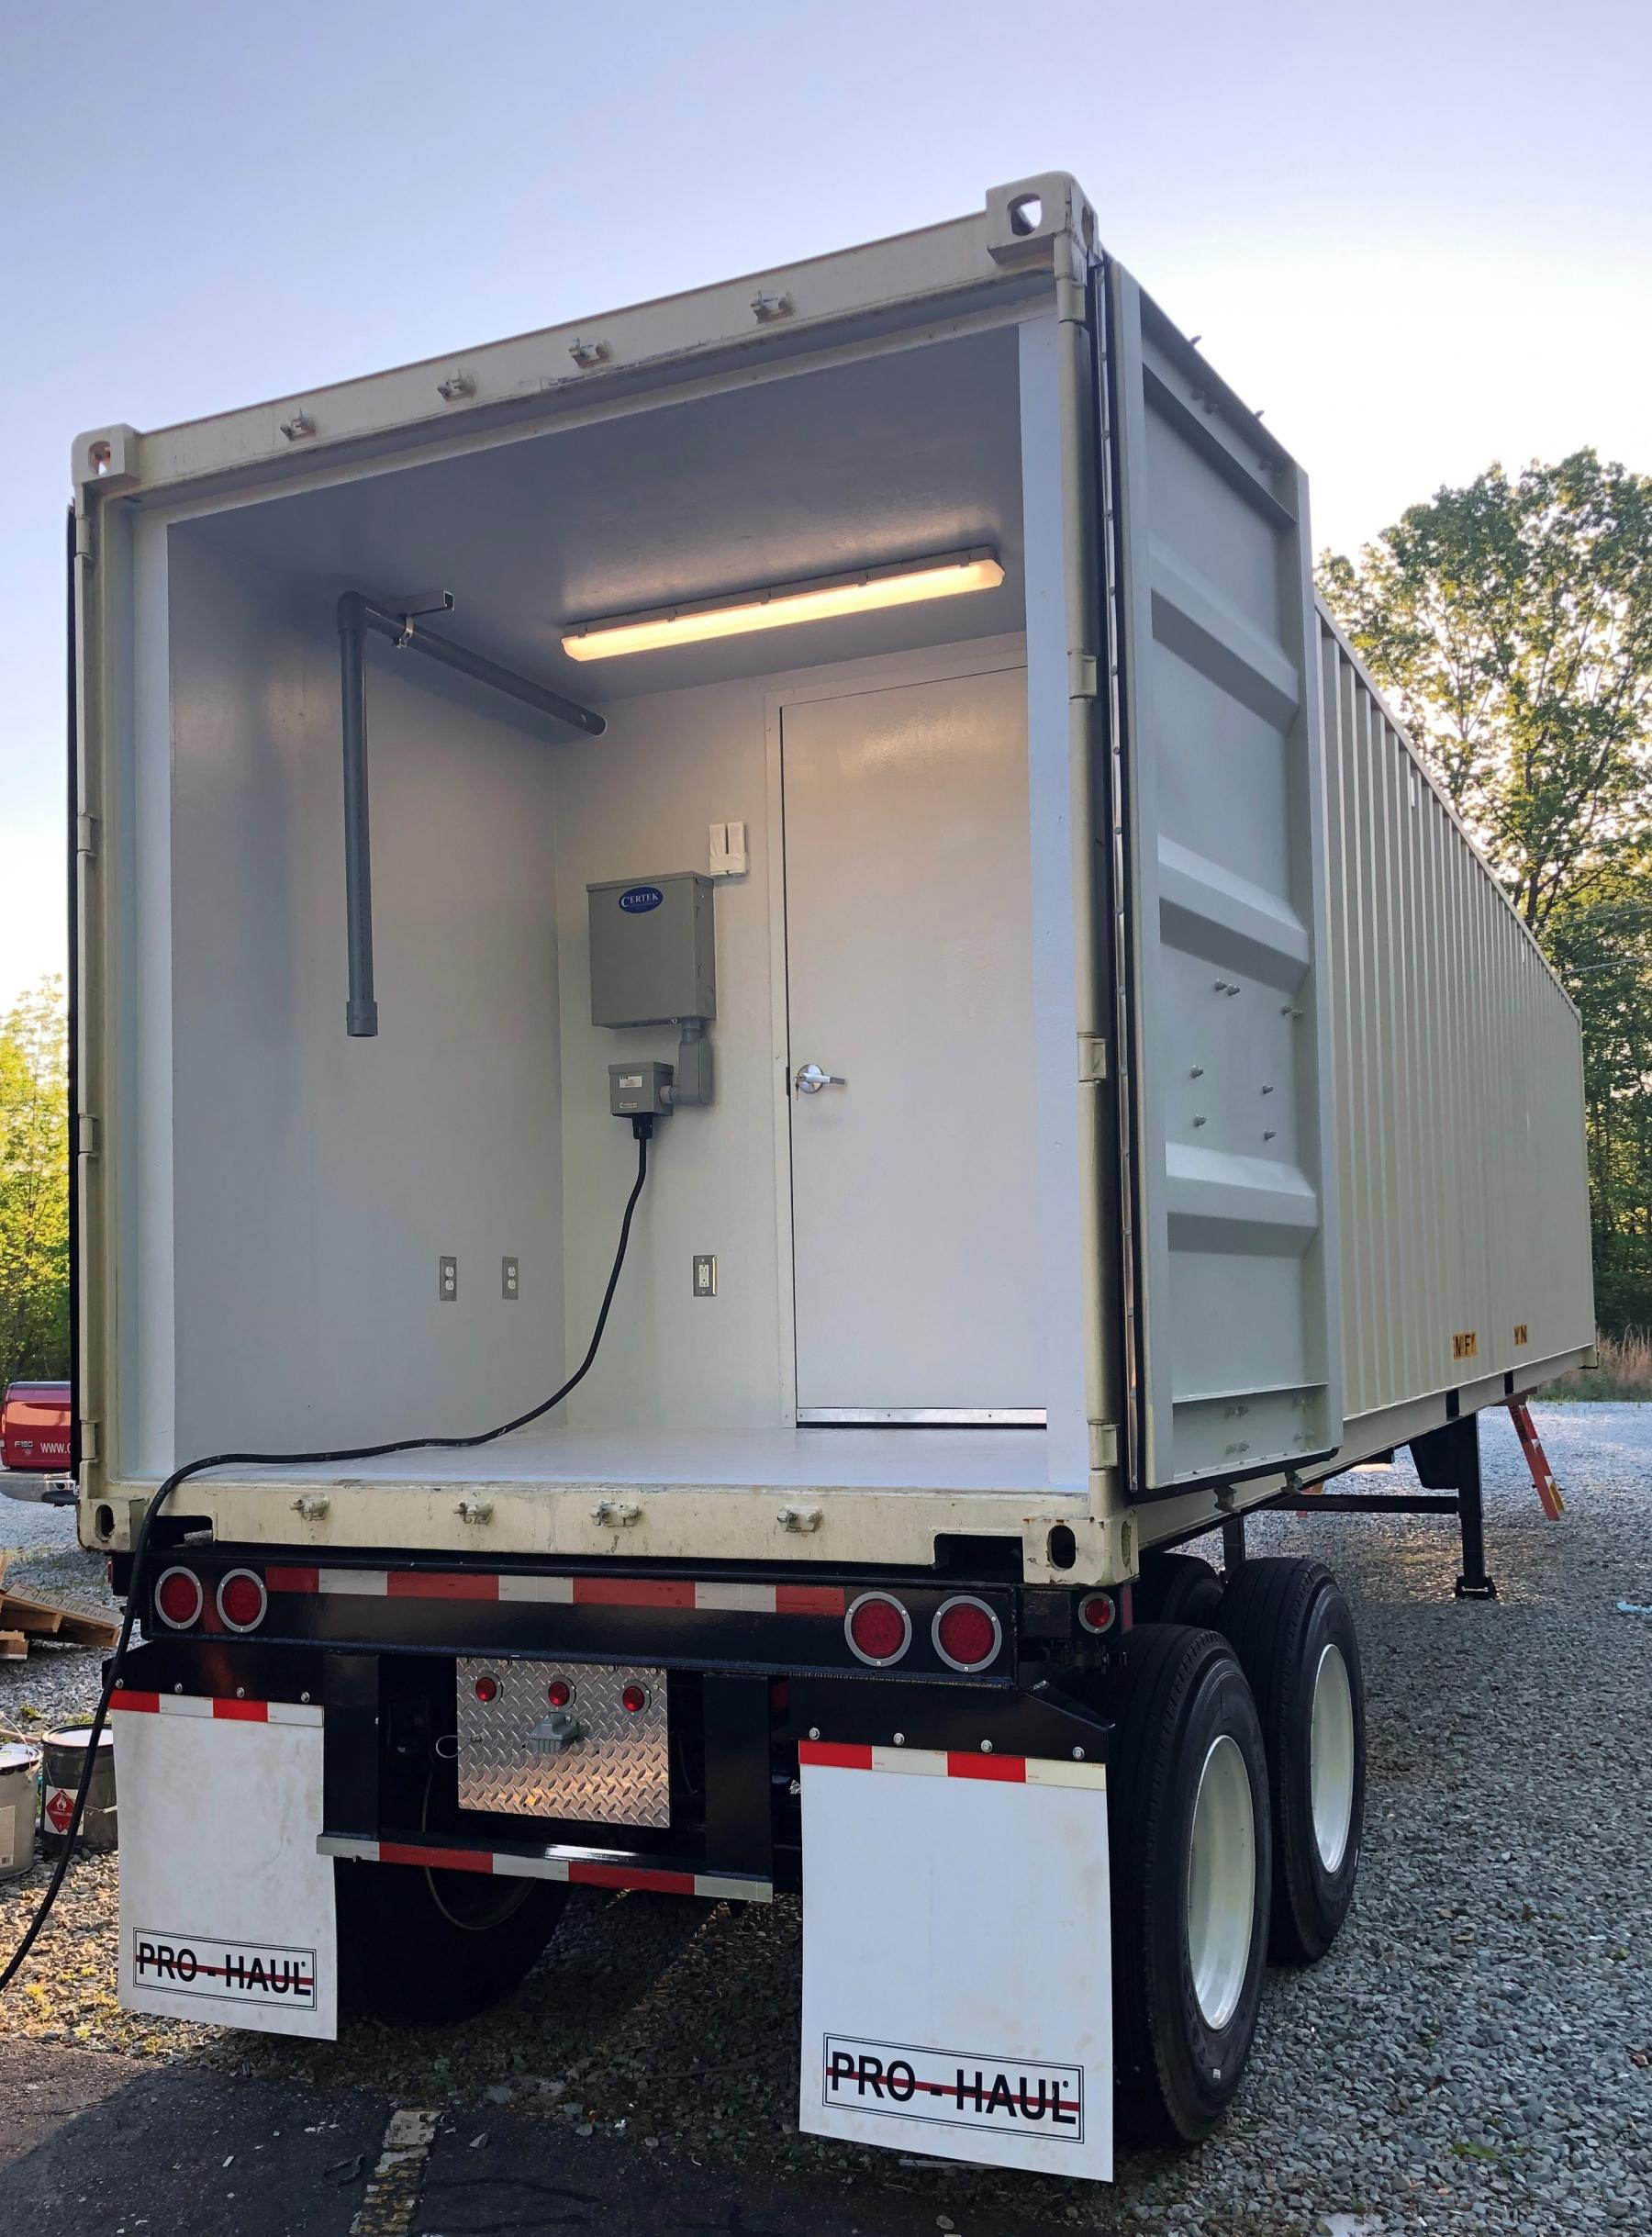 CERTEK Mobile Decontamination Chamber